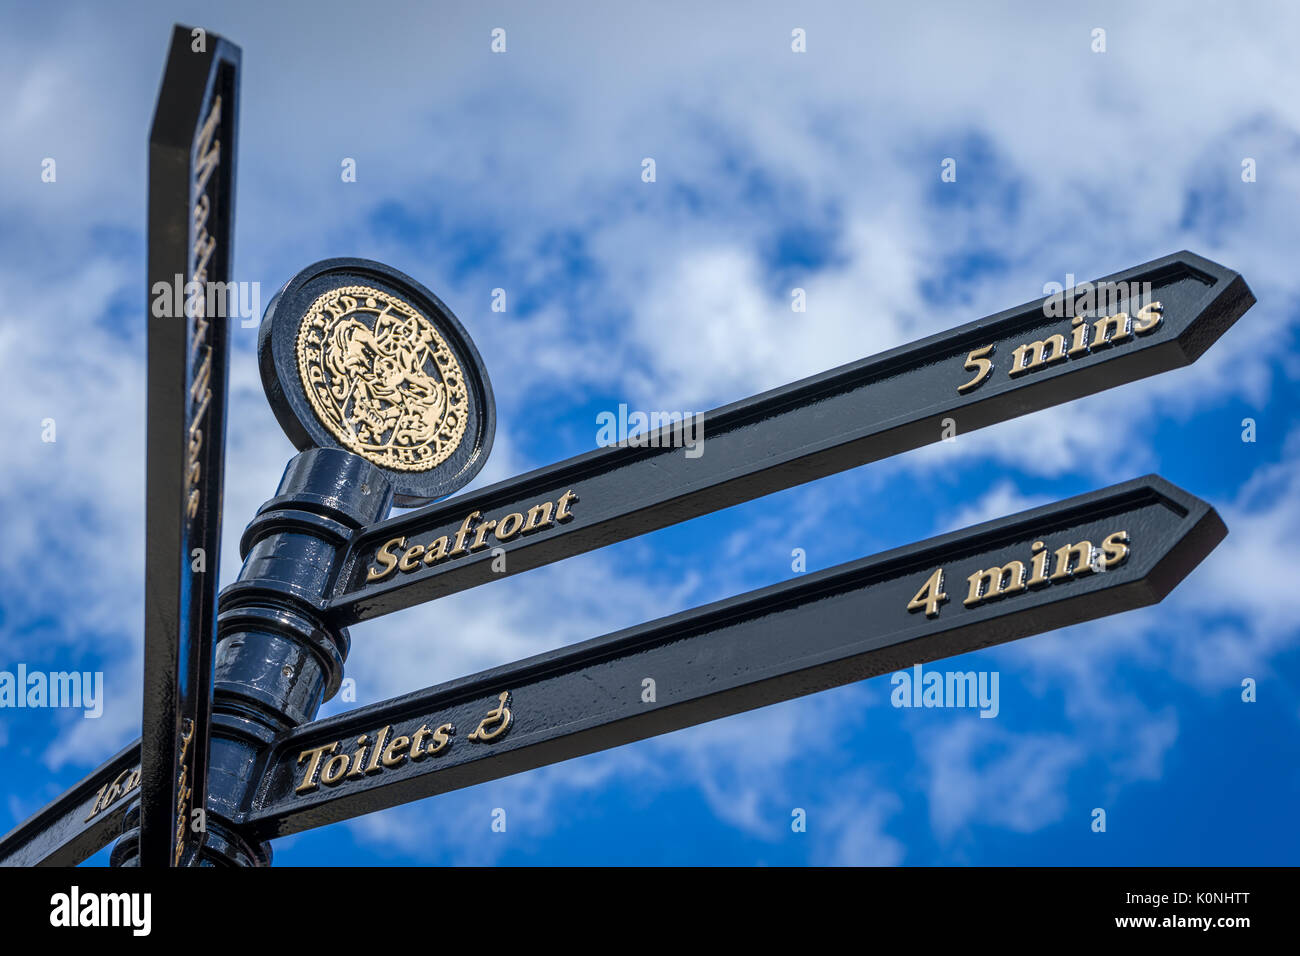 An ornate sign in the Suffolk seaside town of Southwold points the way to he seafront. - Stock Image